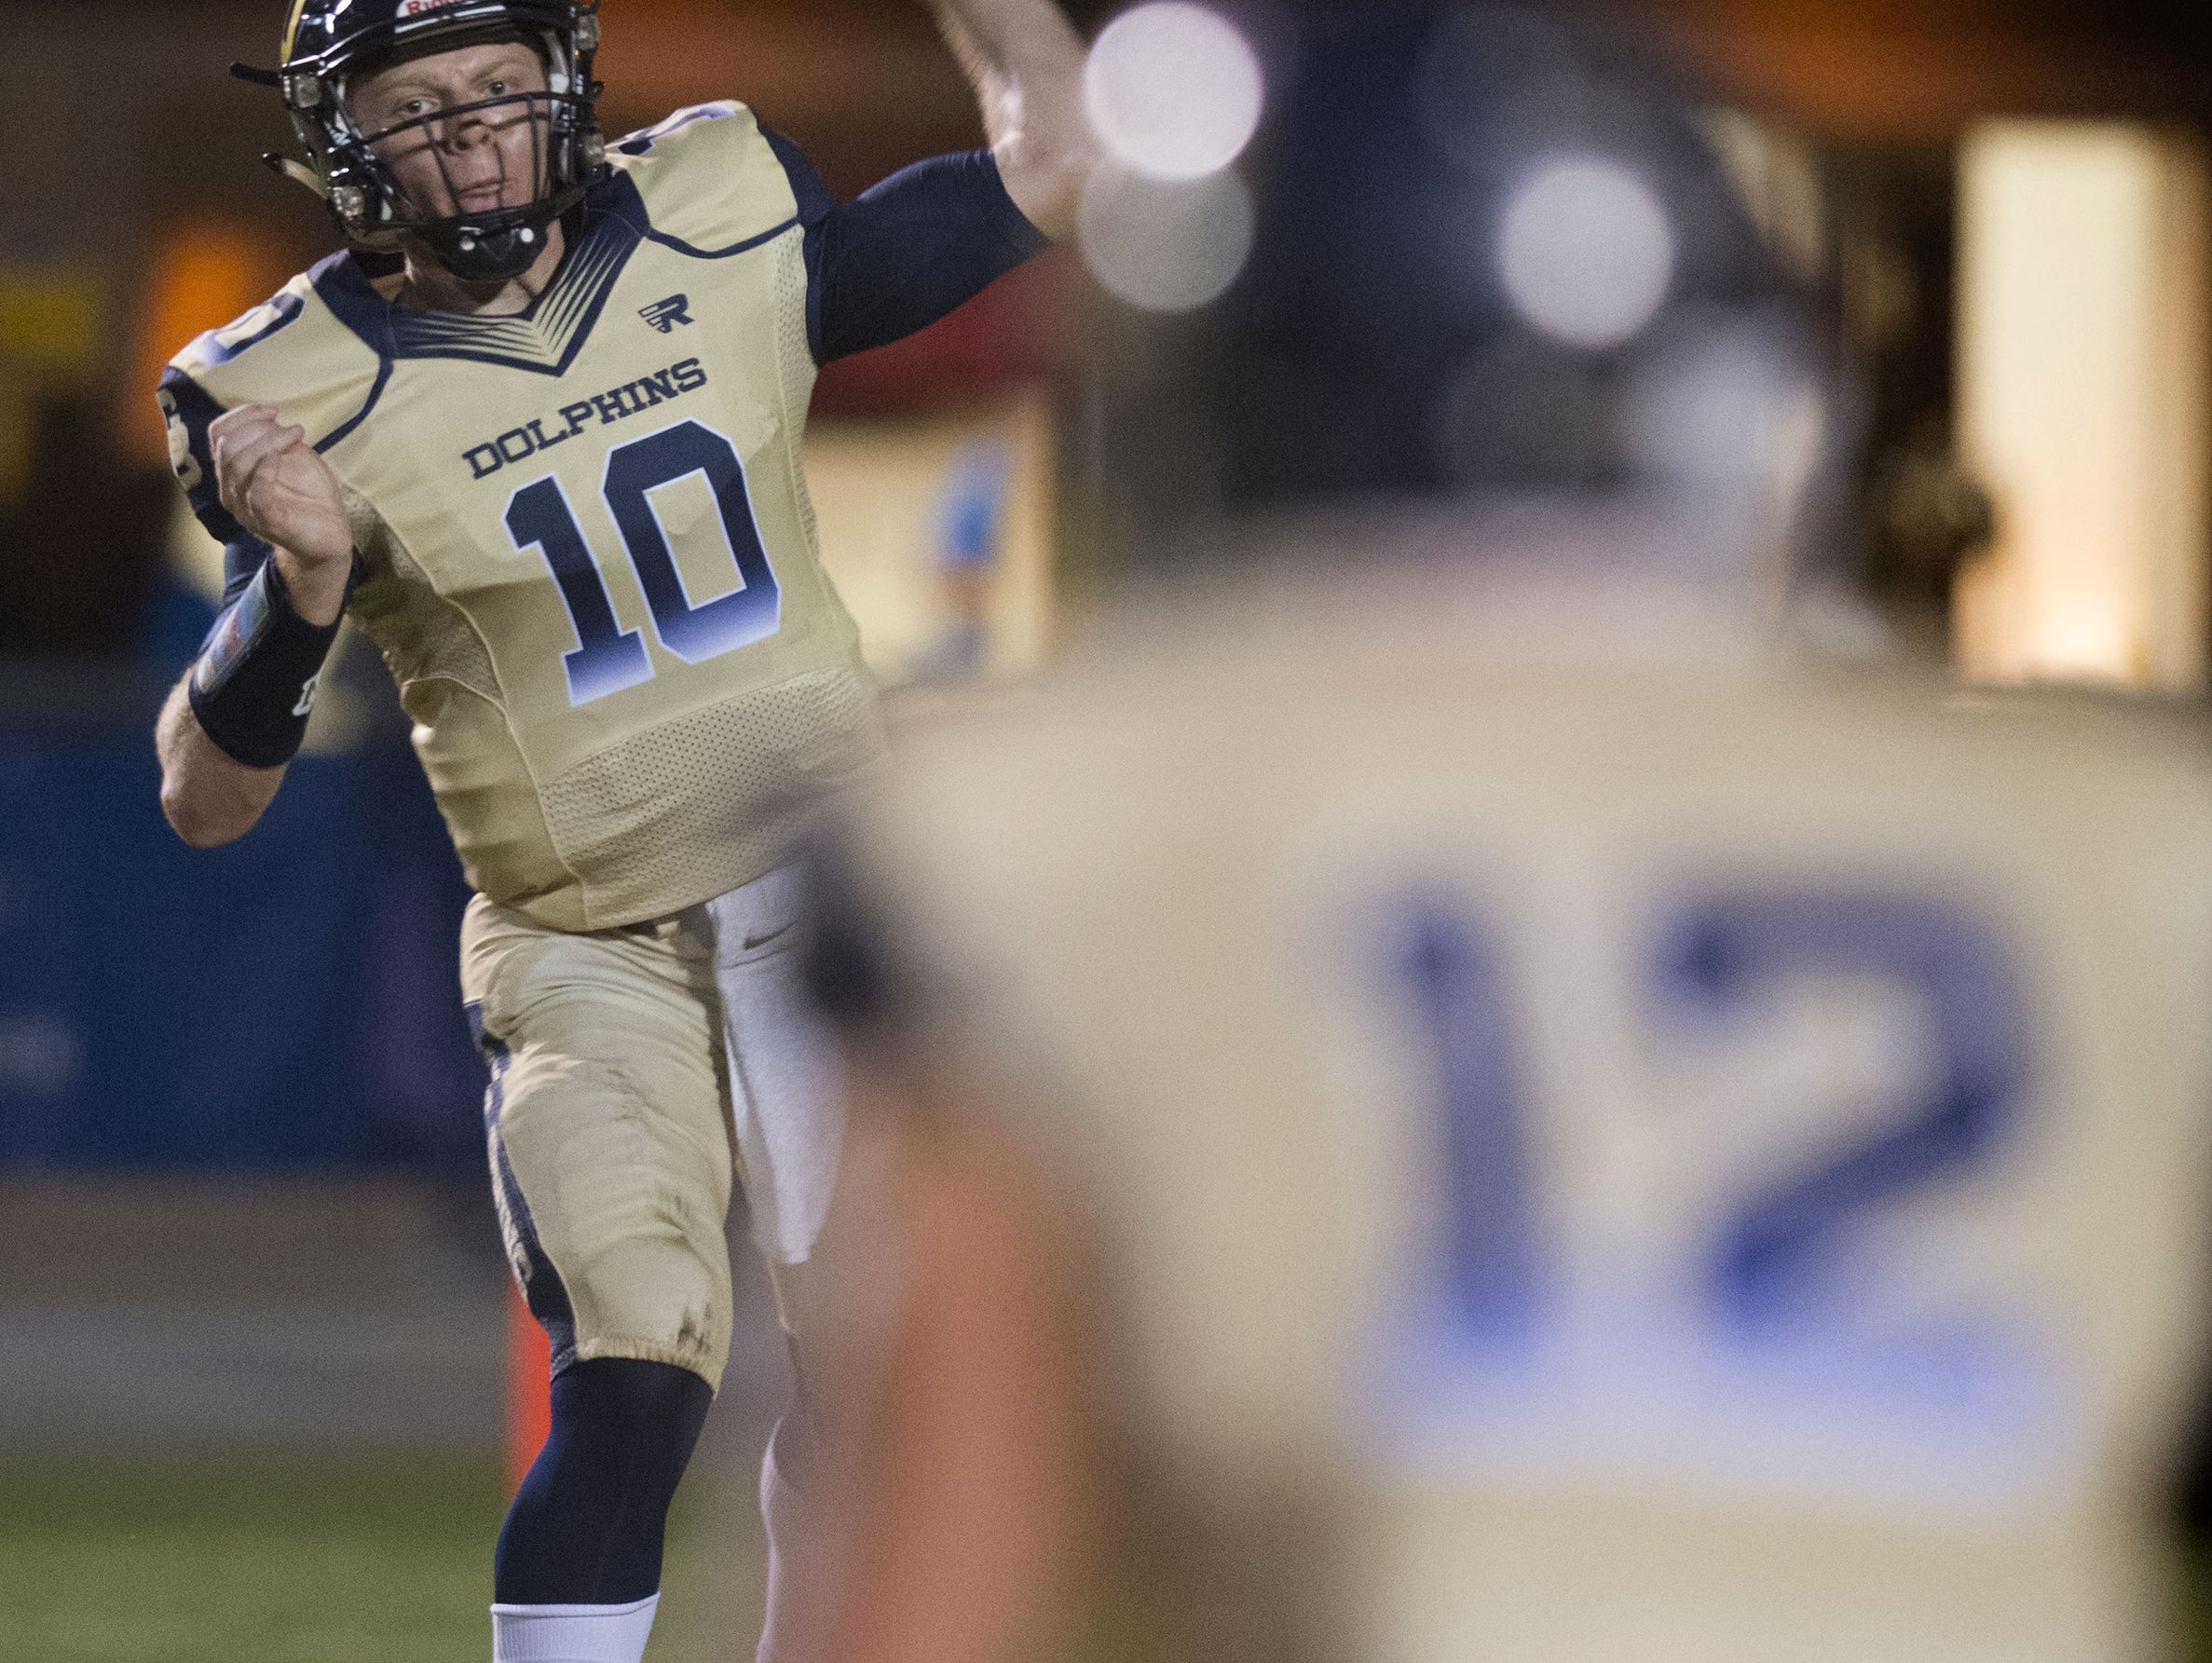 Gulf Breeze quarterback, Tyler Phelps, (No. 10) gives a quick pass to receiver, Cole Sheppard, (No.12) during Friday night's District-2 6A game.